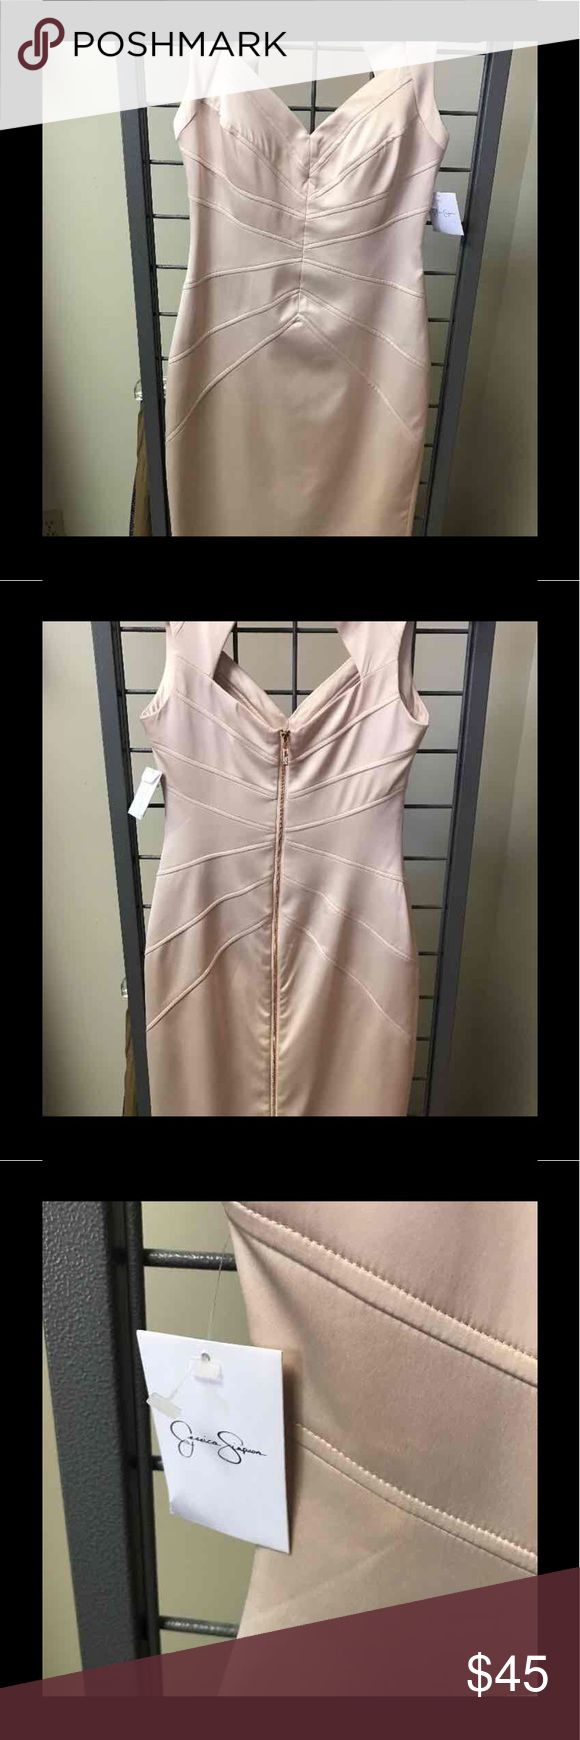 NWT Champagne Colored Dress👗 Jessica Simpson form fitting dress perfect for any Summer Event! Jessica Simpson Dresses Midi